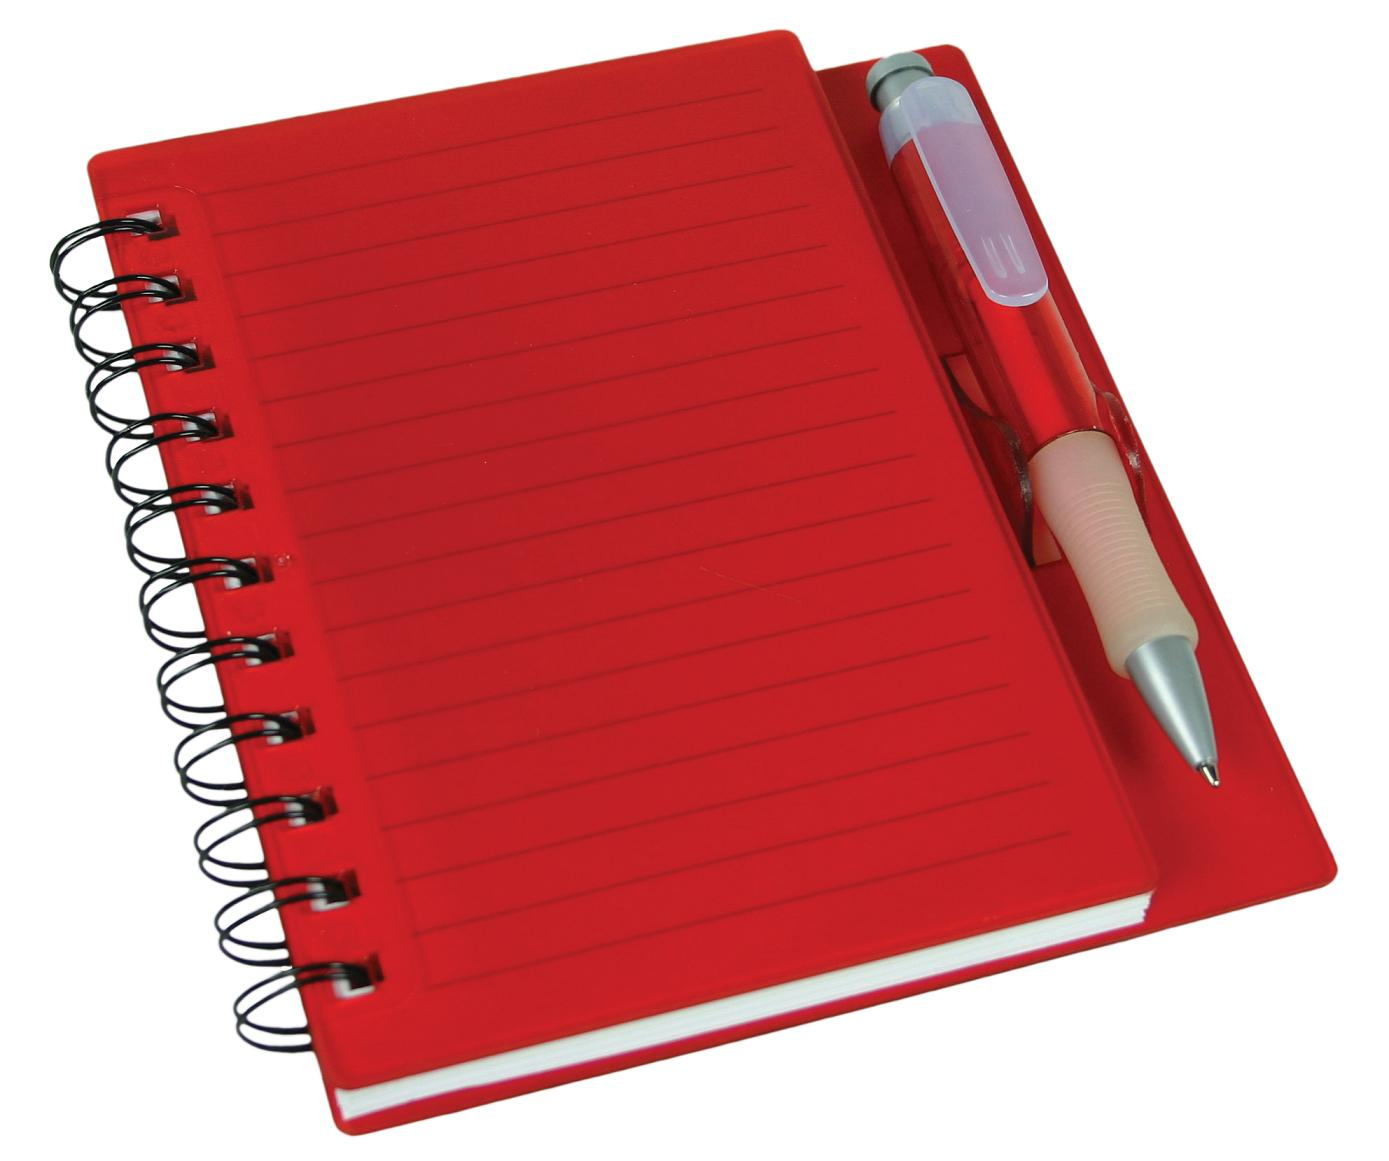 the freedom writers diary sparknotes The freedom writers' diary , you will also be expected to respond to several entries of the book in a more detailed, yet reflective manner this journal will be divided into 4 separate grades, one for each section of the book (ie: freshman year, sophomore year, junior year, and senior year.